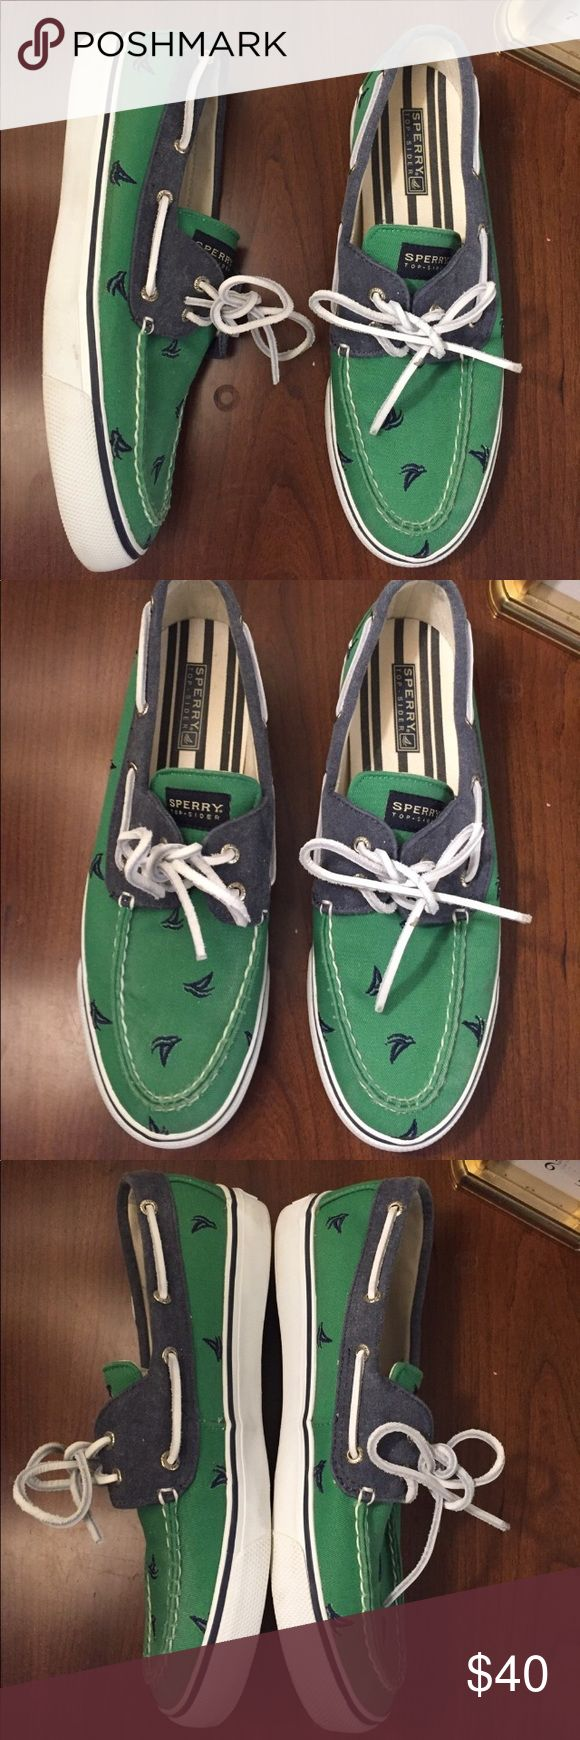 Sperry Top Shoes Sperry Top sider canvas shoes Sperry Top-Sider Shoes Boat Shoes